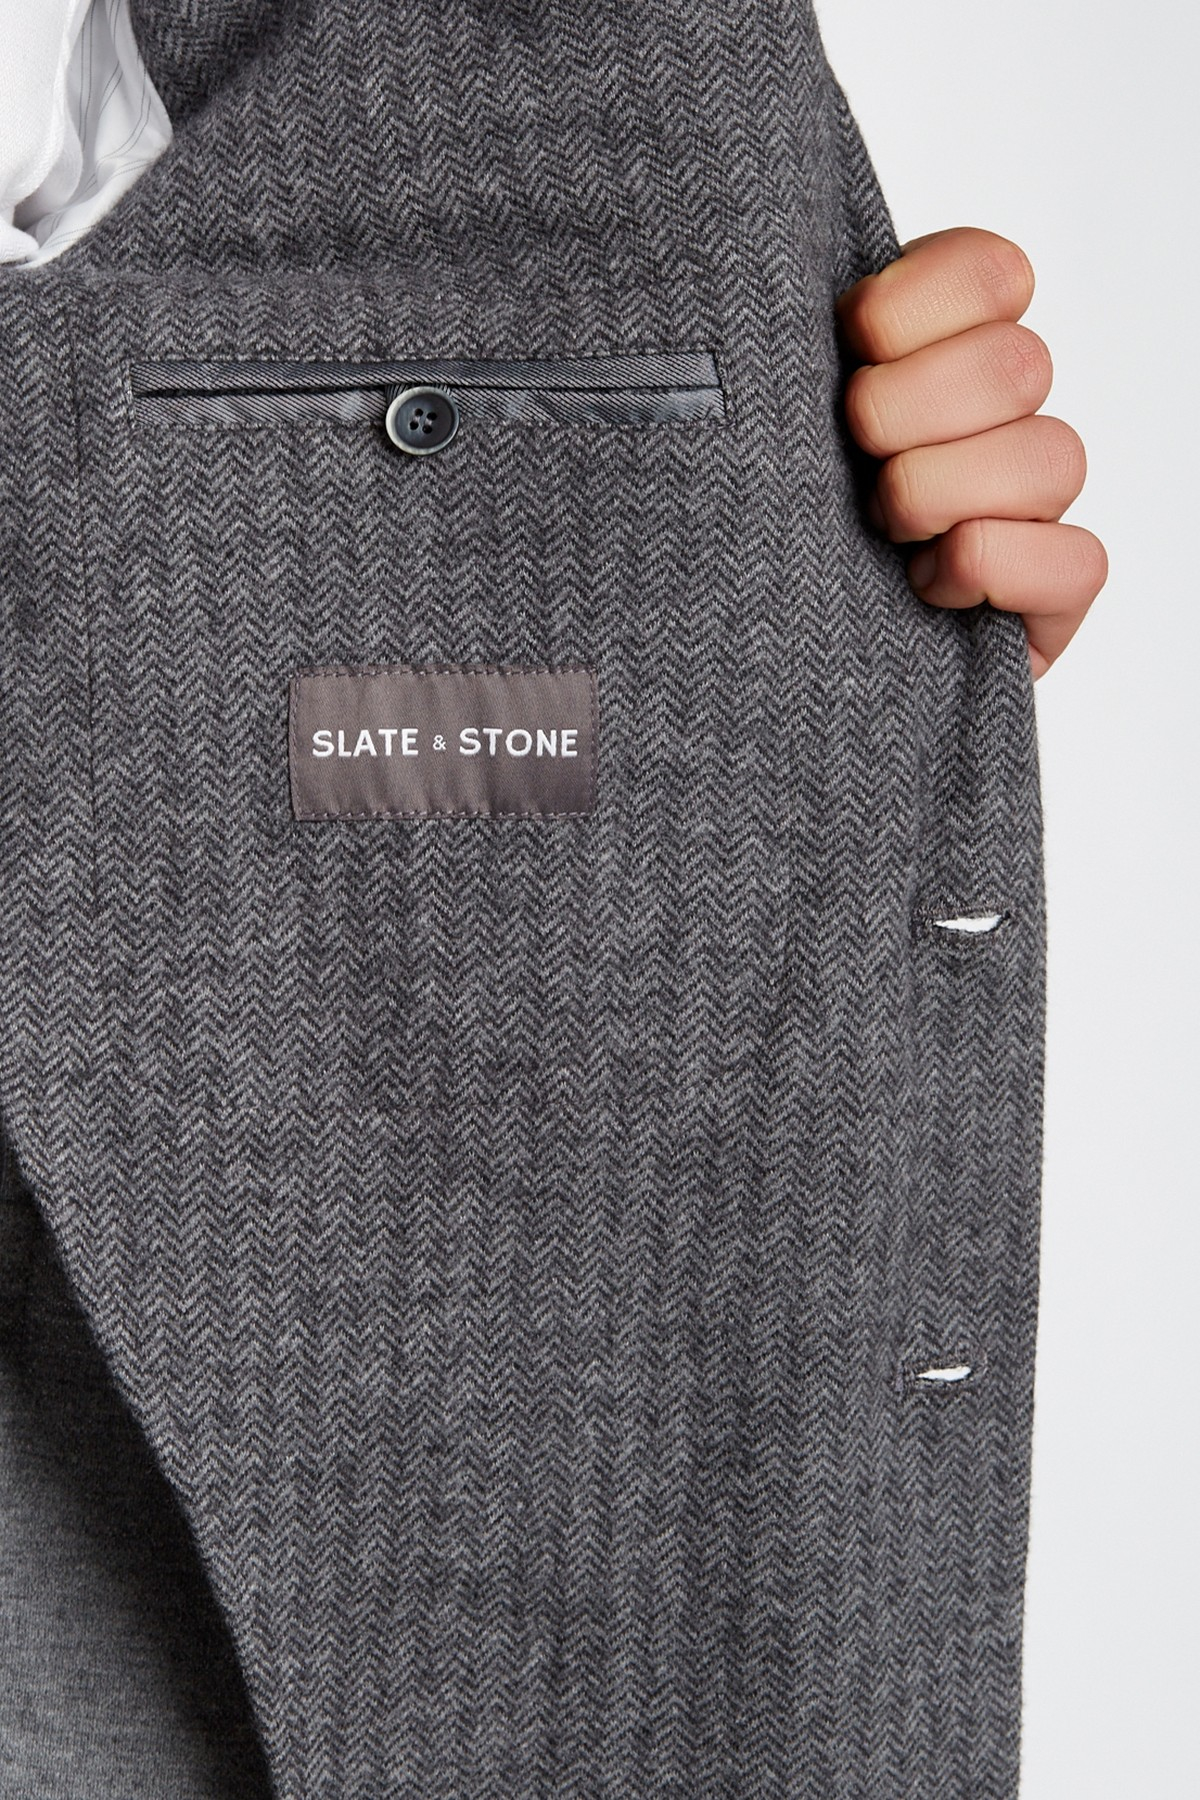 Slate And Stone Clothing : Slate stone quilted knit blazer in gray for men lyst